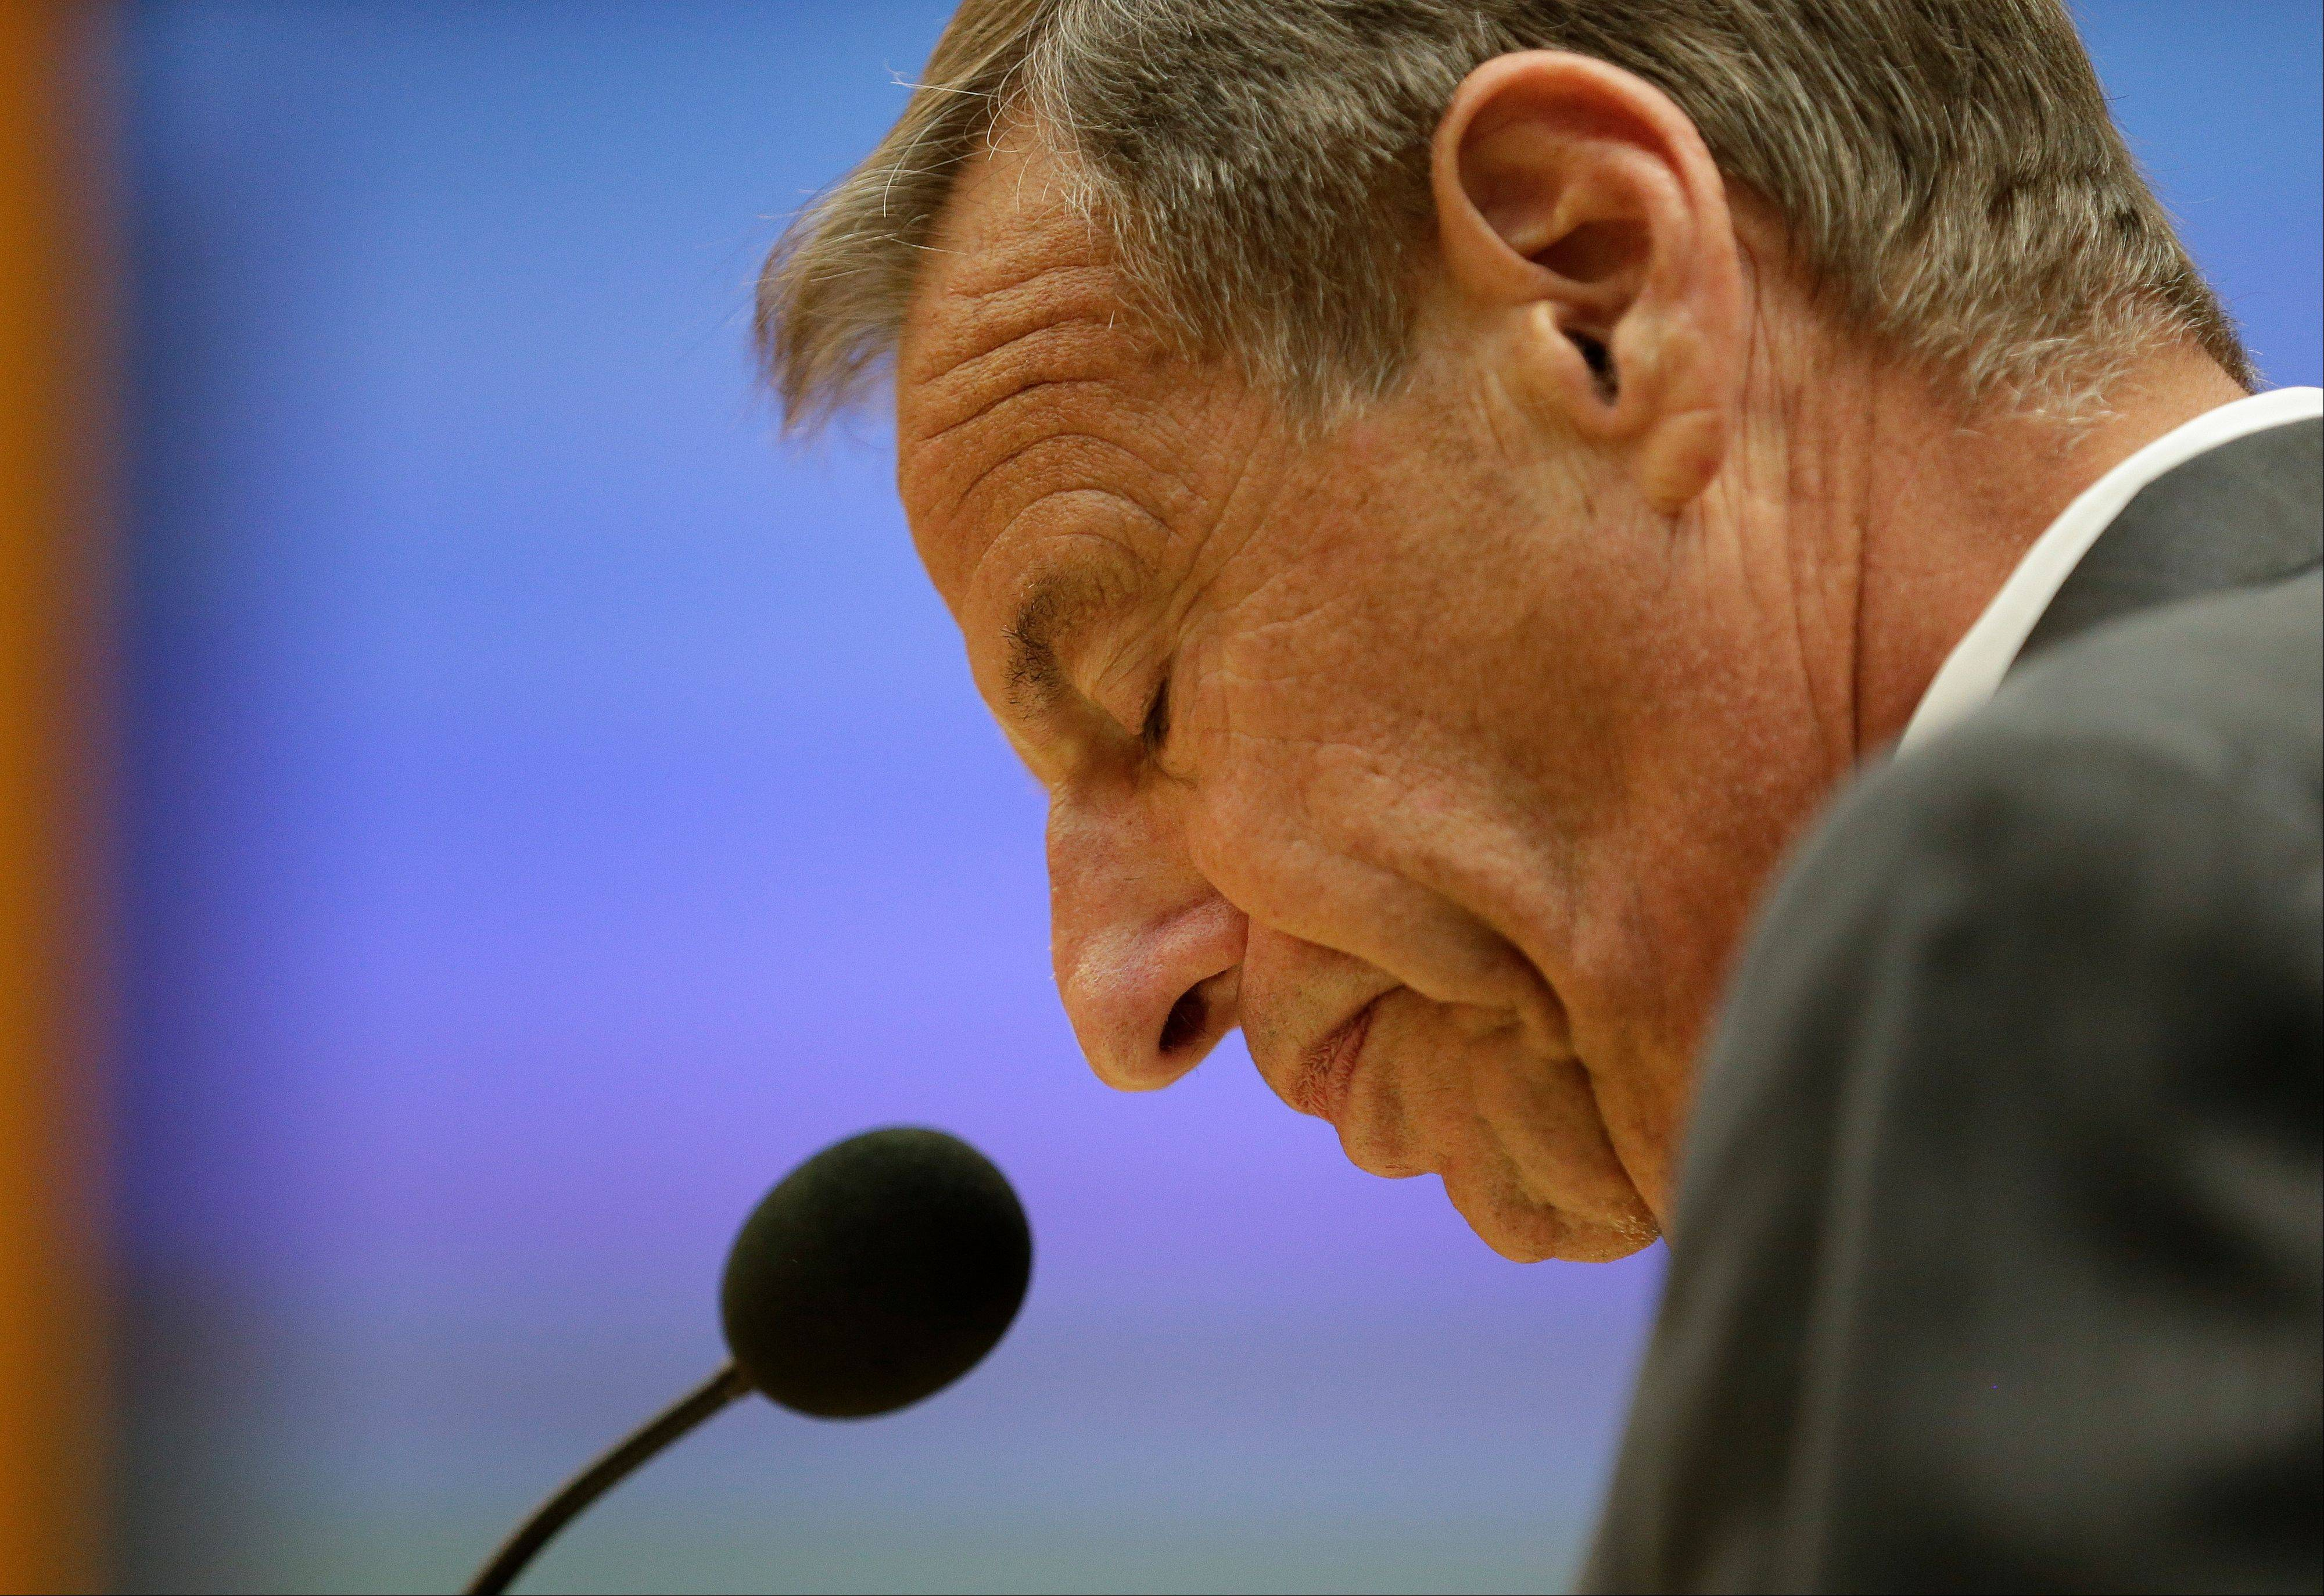 The California attorney general�s office has charged Former San Diego Mayor Bob Filner with felony false imprisonment and two misdemeanor counts of battery. Filner, 71, resigned in late August, succumbing to intense pressure after at least 17 women brought lurid sexual harassment allegations against him.